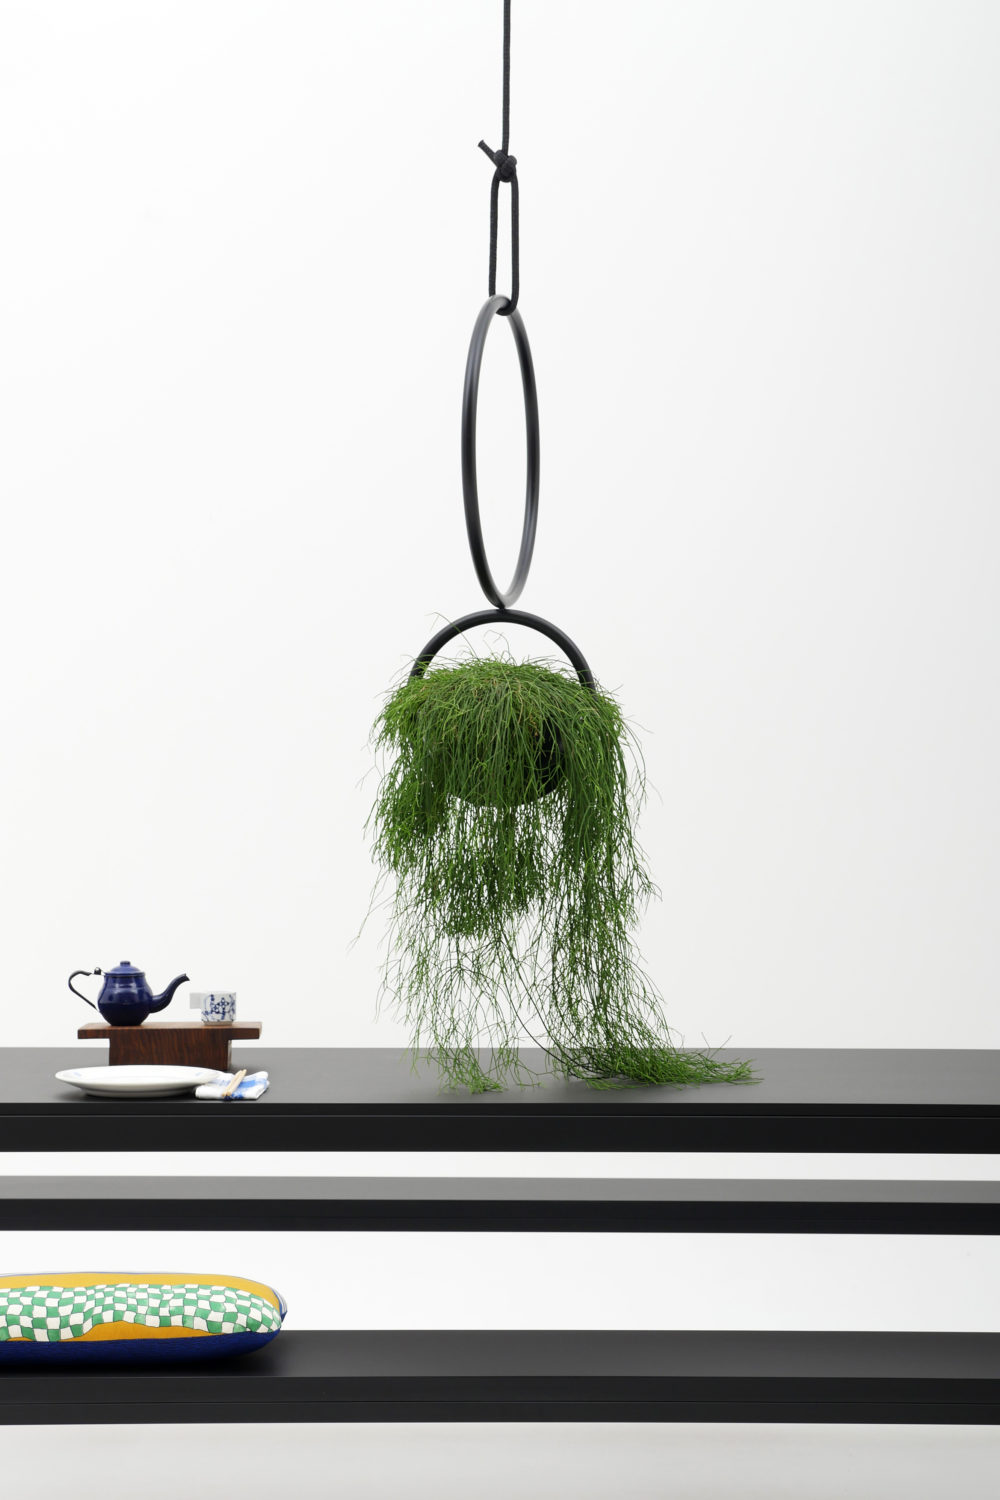 BLUMENKUGEL is an hanging-plants room object, is made of Ø 22mm steel tube and includes a vase made of PVC. is ceiling-mounted with a ceiling hook and a supplied rope. The steel is powder